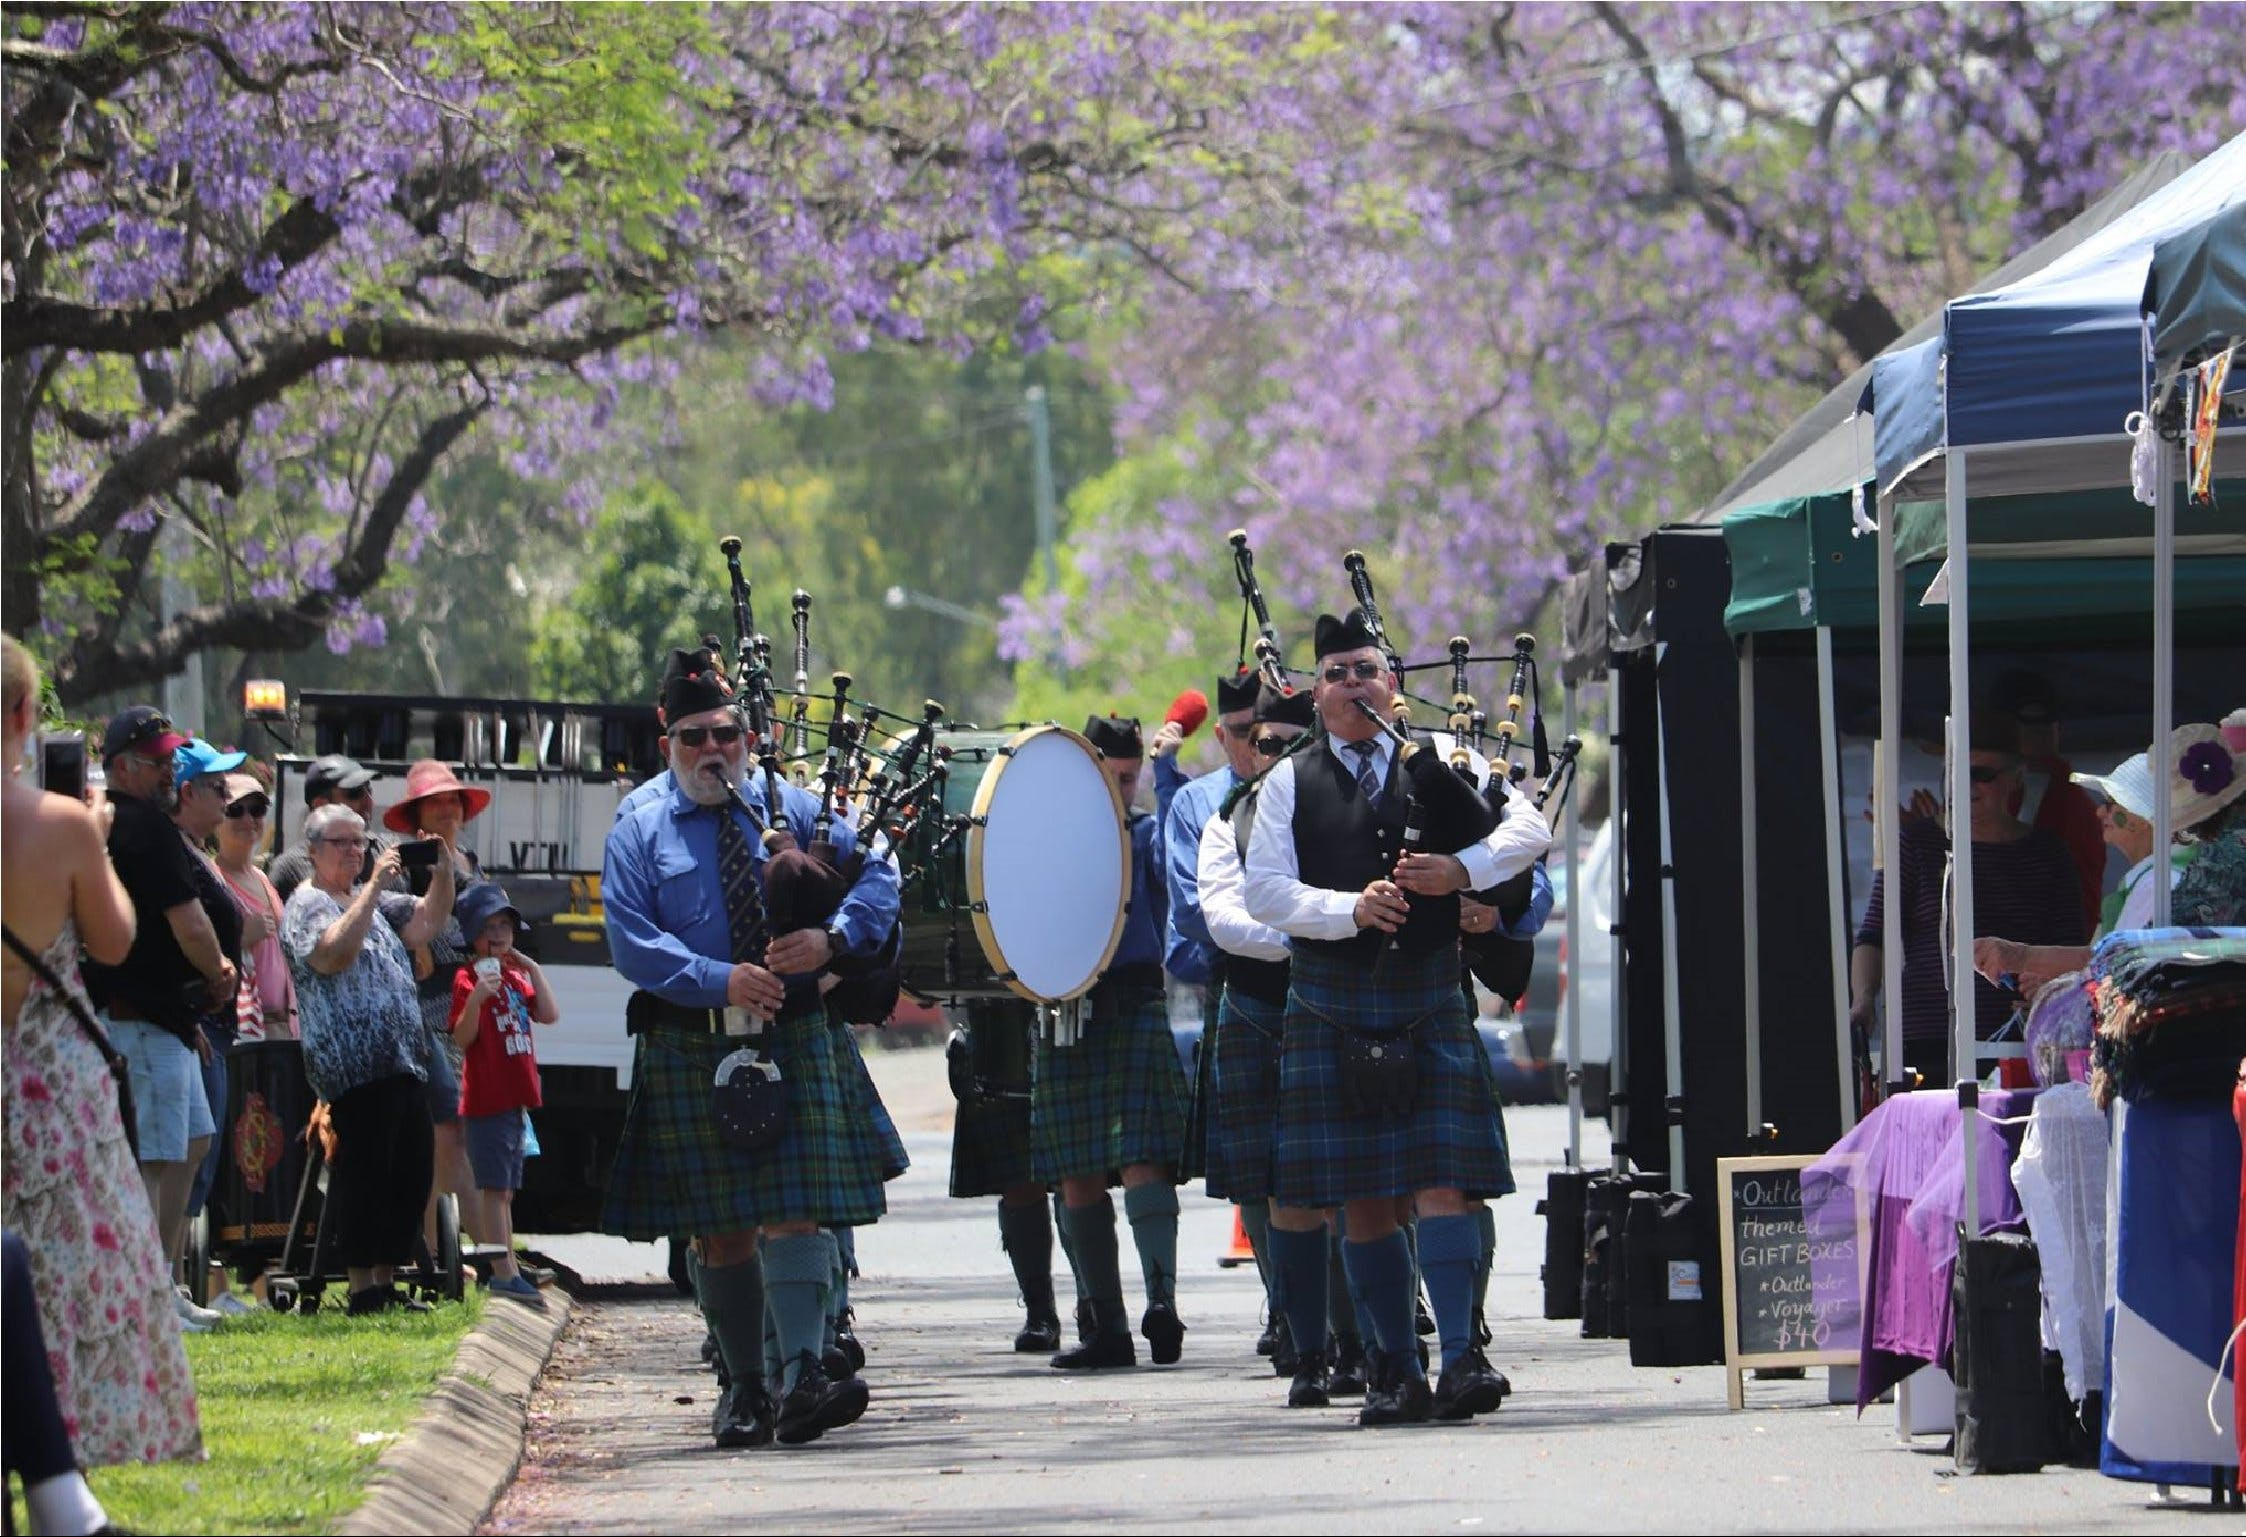 Celtic Festival of Queensland - VIC Tourism